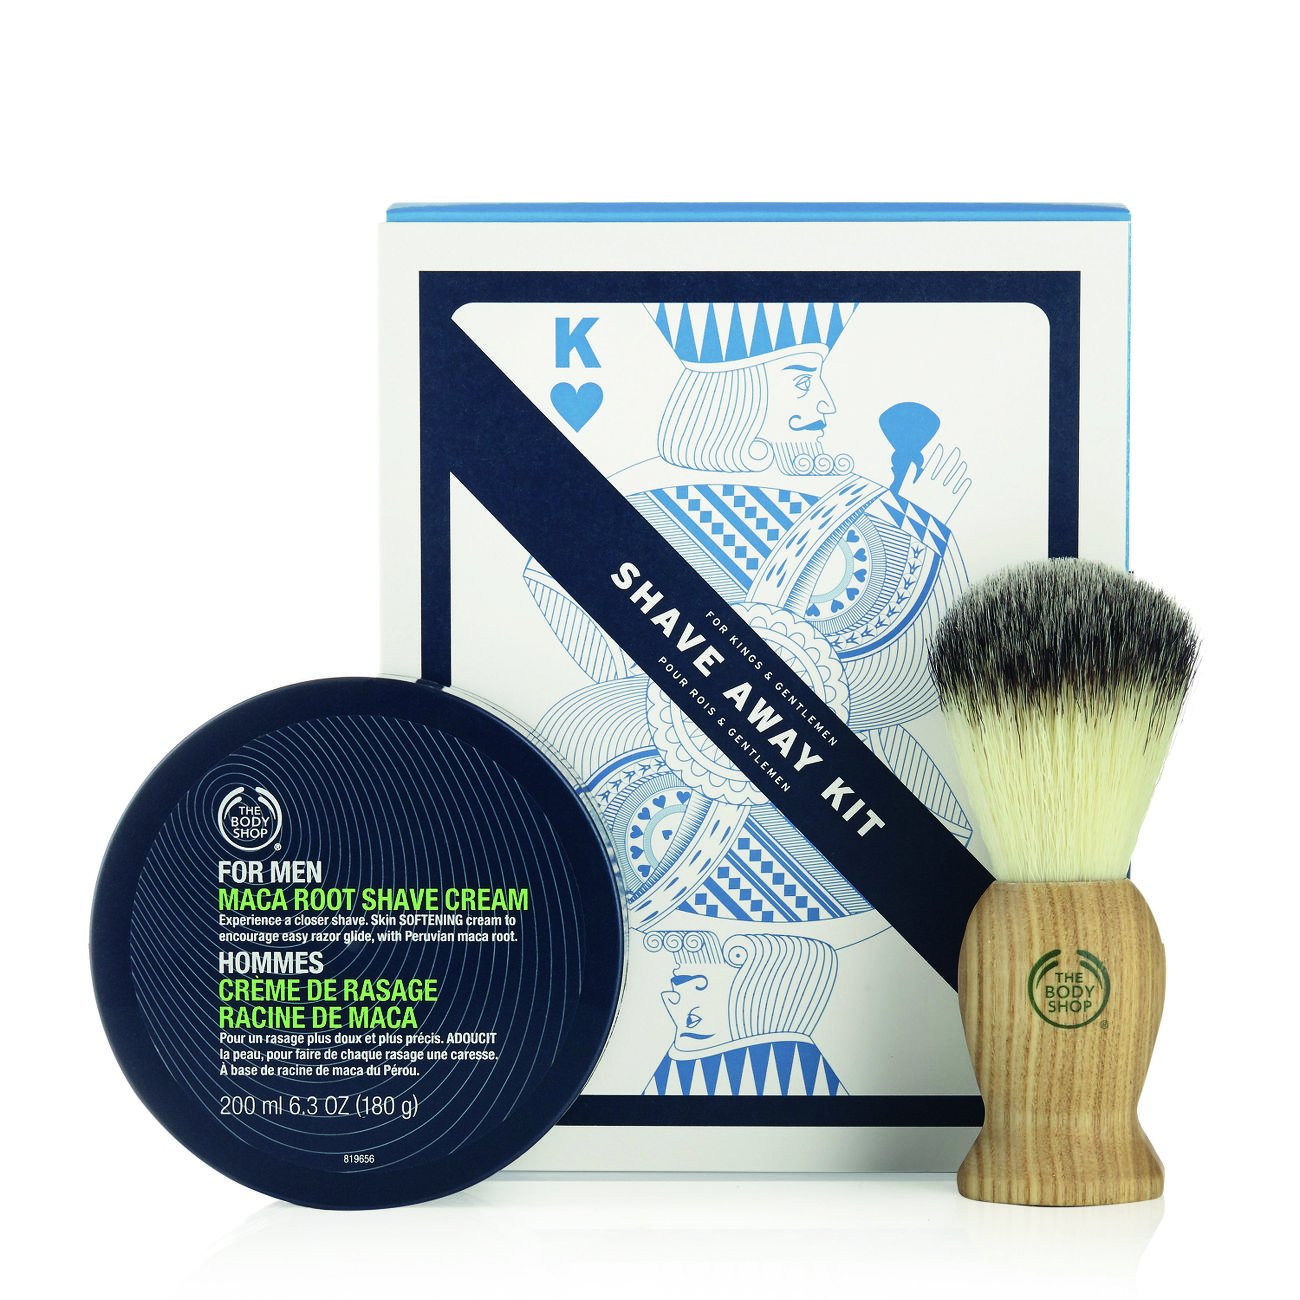 The Body Shop Shave Away Kit, 2pc Paraben-Free Shave Kit for Men Buth-na-Bodhaige Inc d/b/a The Body Shop AHGRD006793